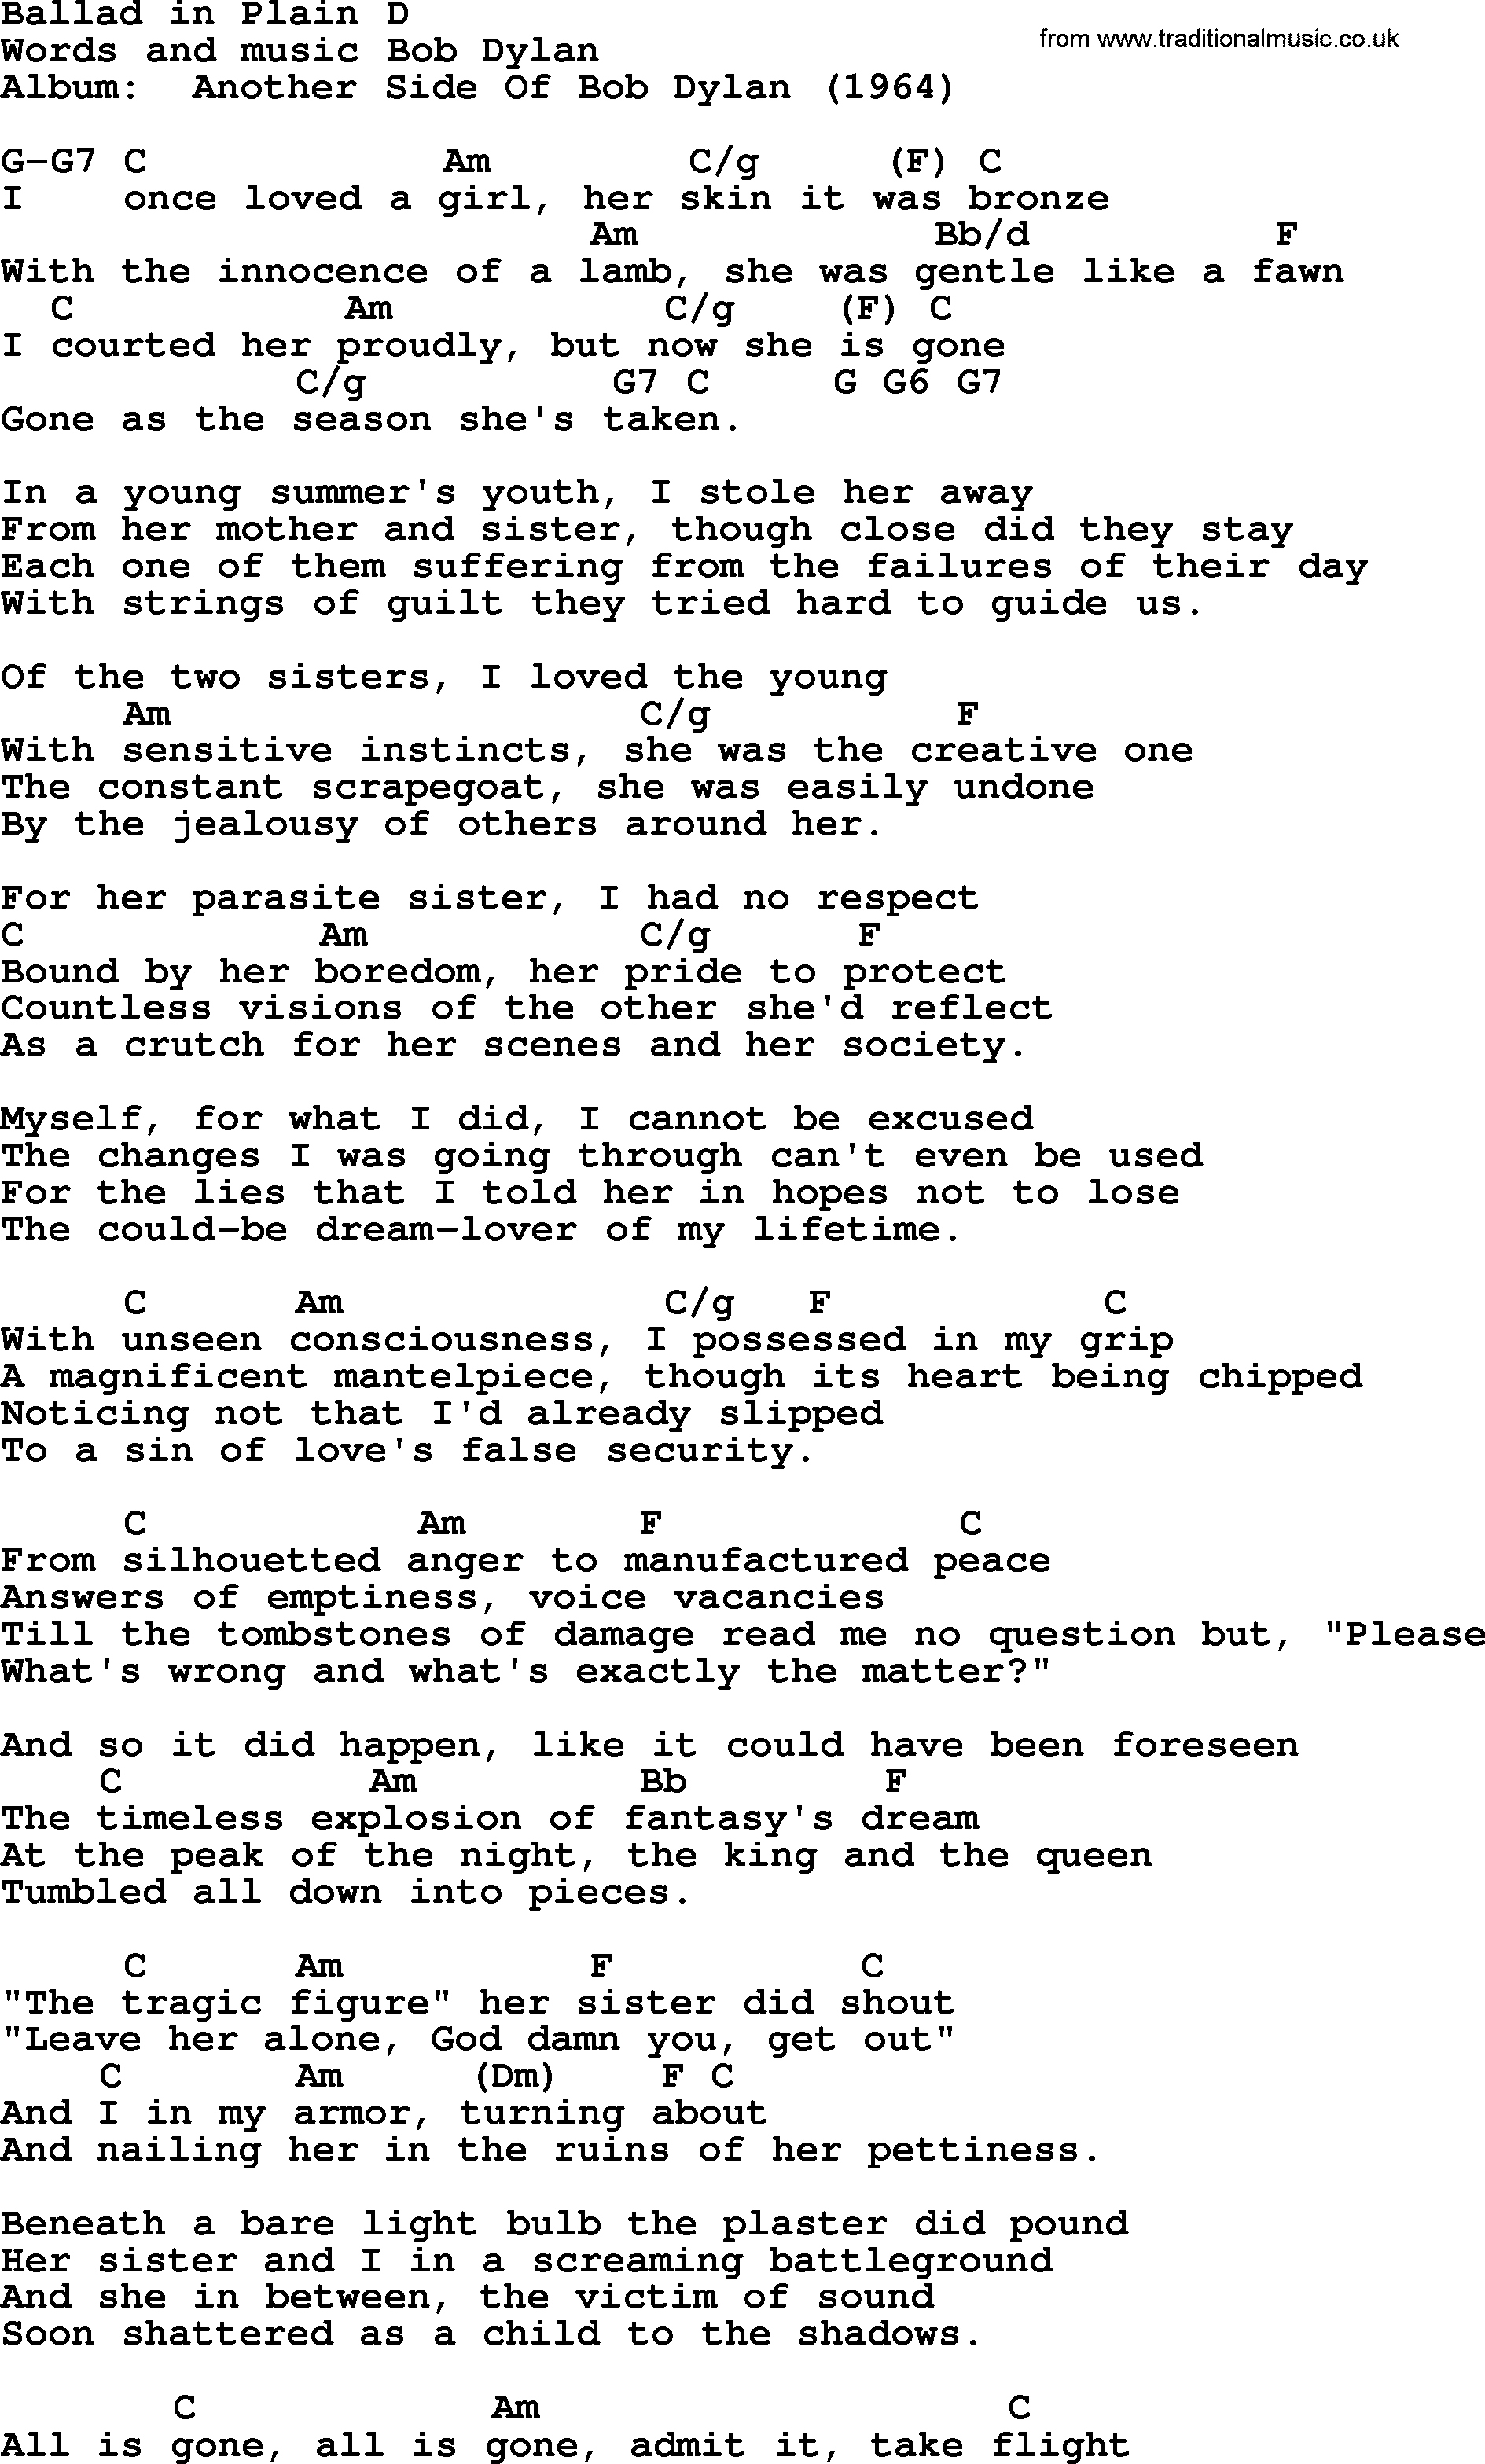 Bob Dylan Song Ballad In Plain D Lyrics And Chords